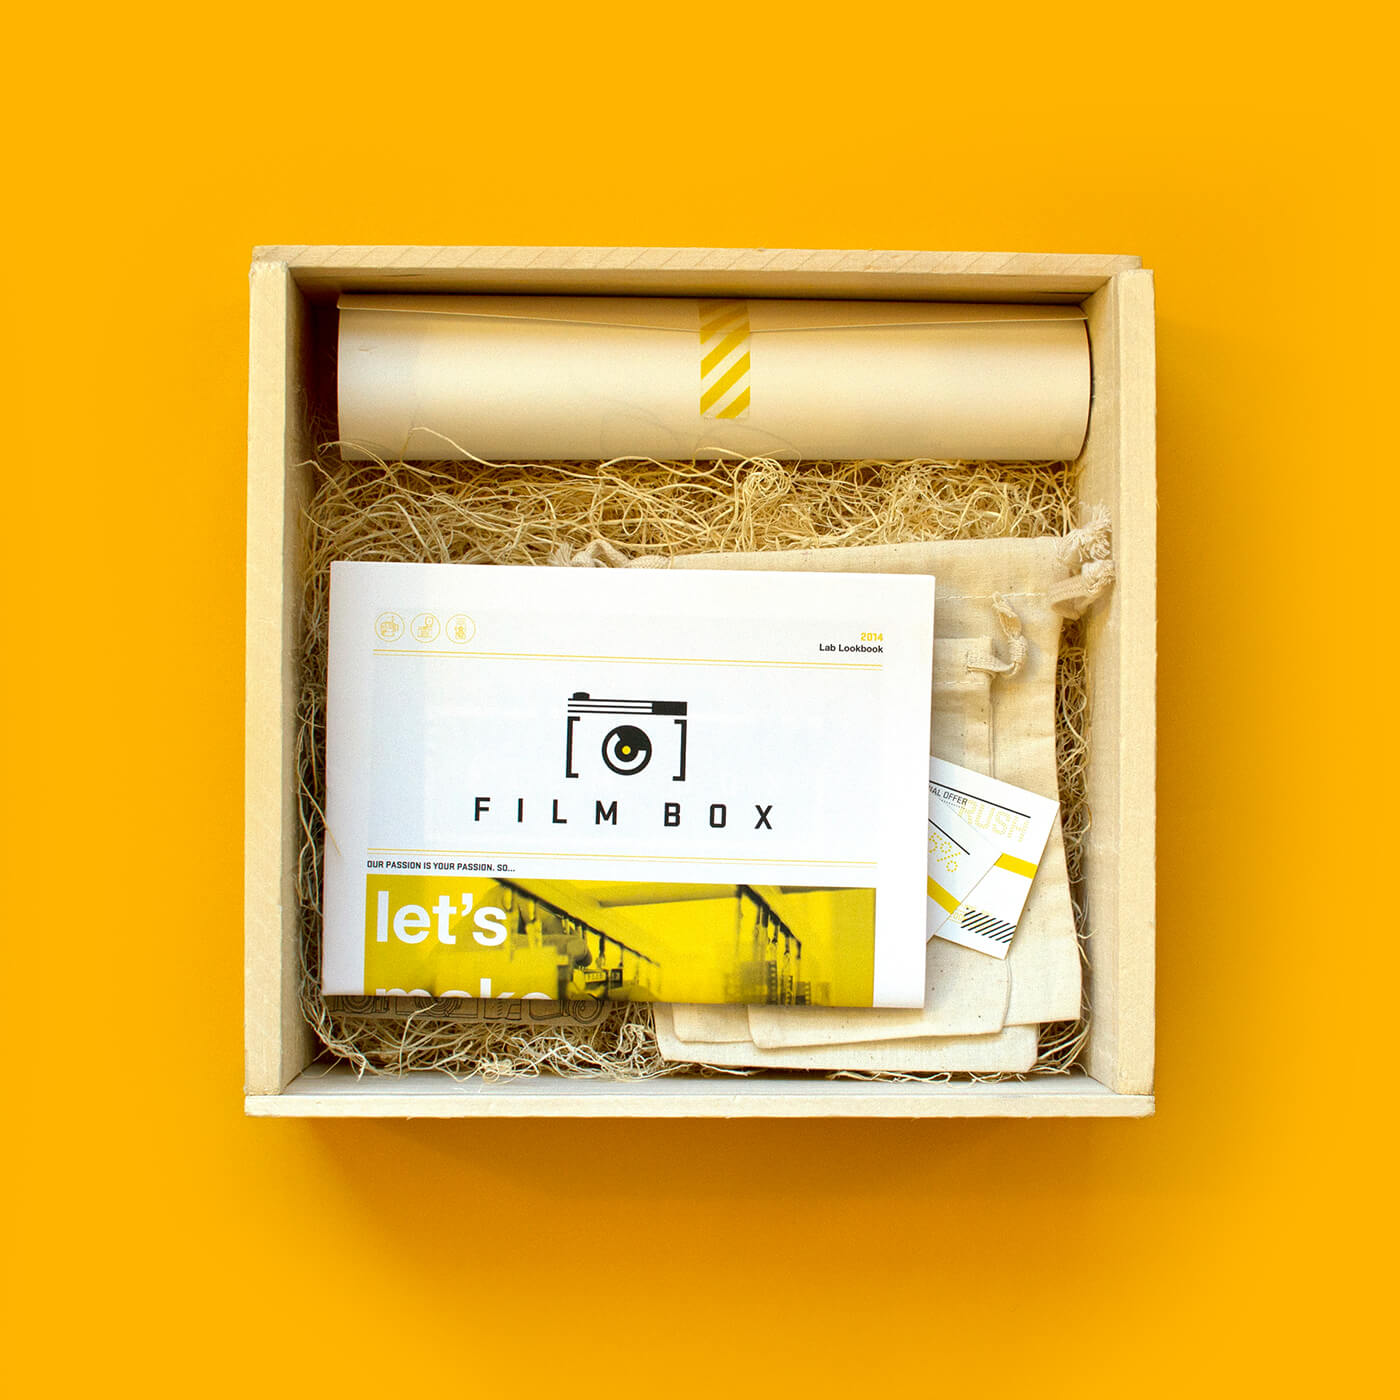 Film Box - A tactile and experiential marketing kit designed for Film Box, a photo development lab in Nashville, to send out to professional photographers and celebrate the beauty and process of film photography.Art Direction, DesignView Project →